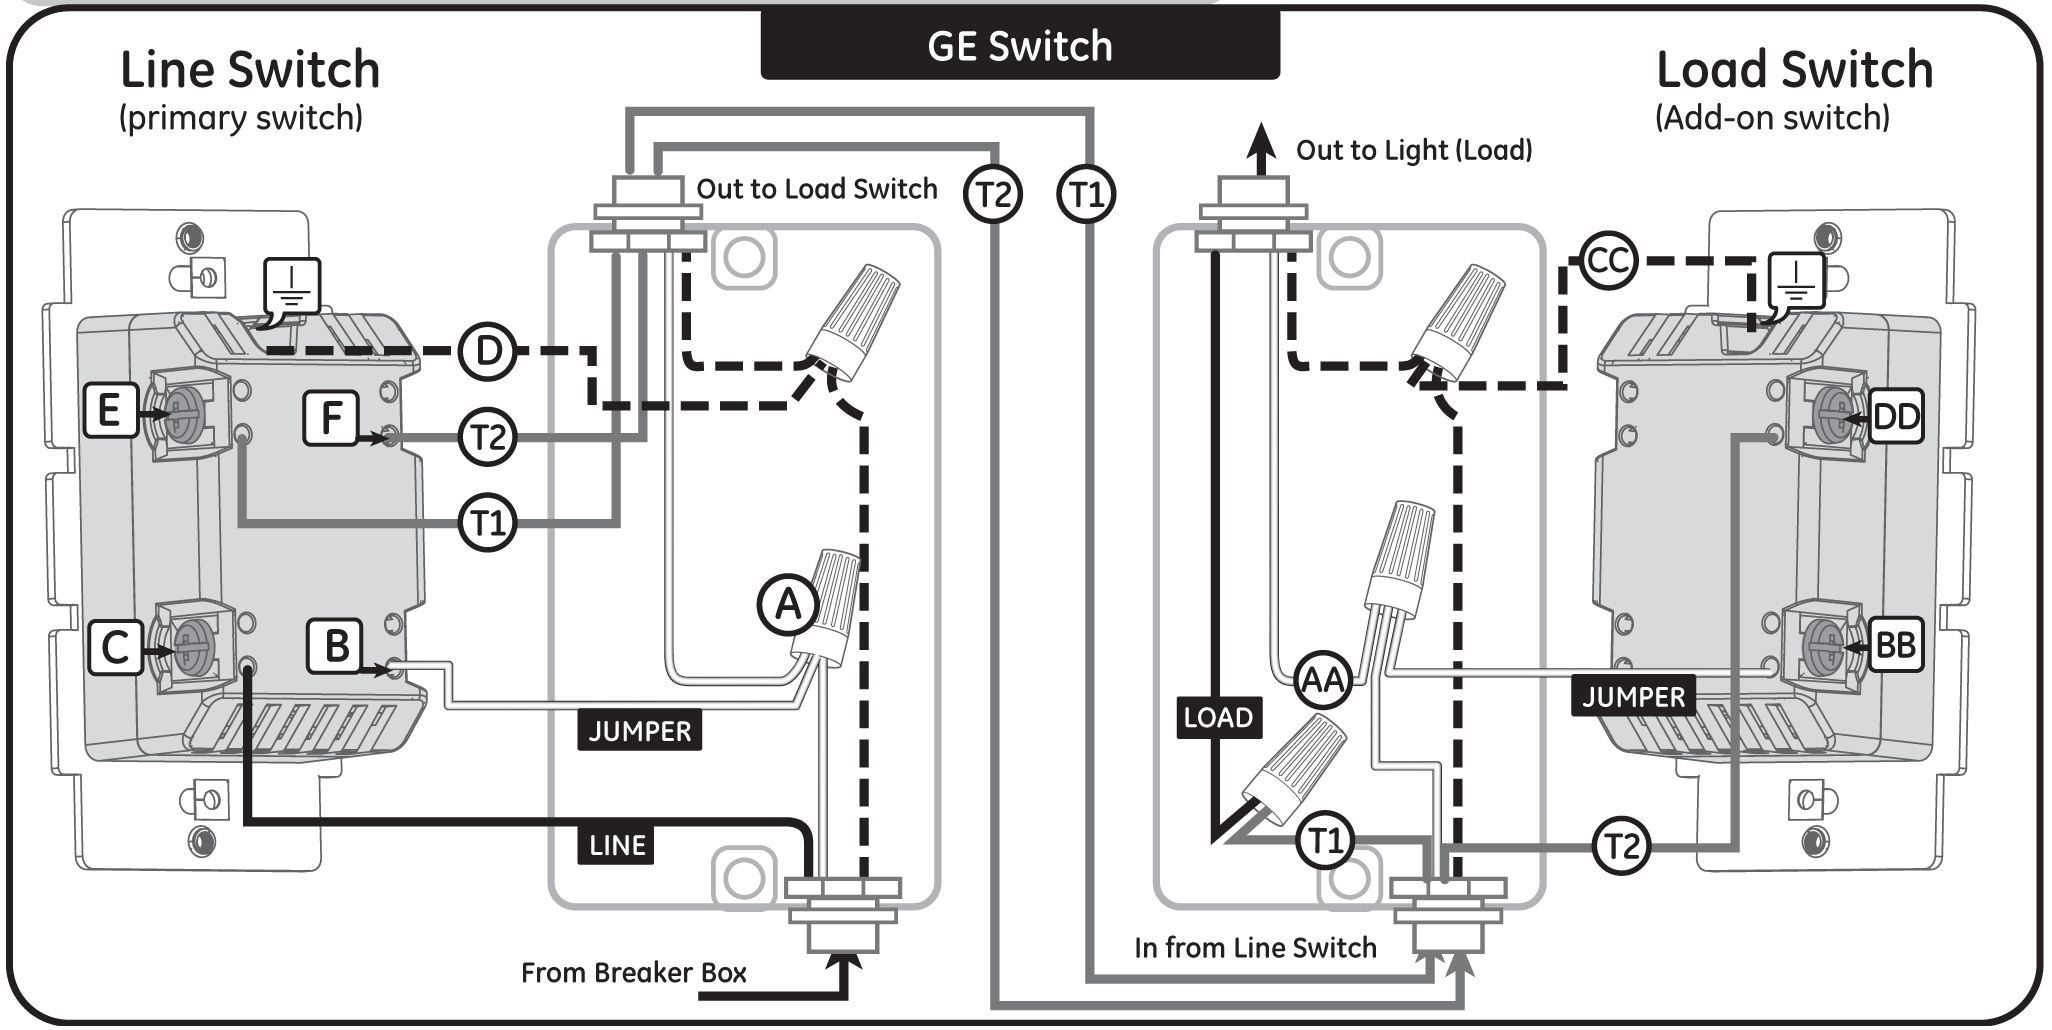 Wiring Diagram For 3 Way Switch With 4 Lights Light